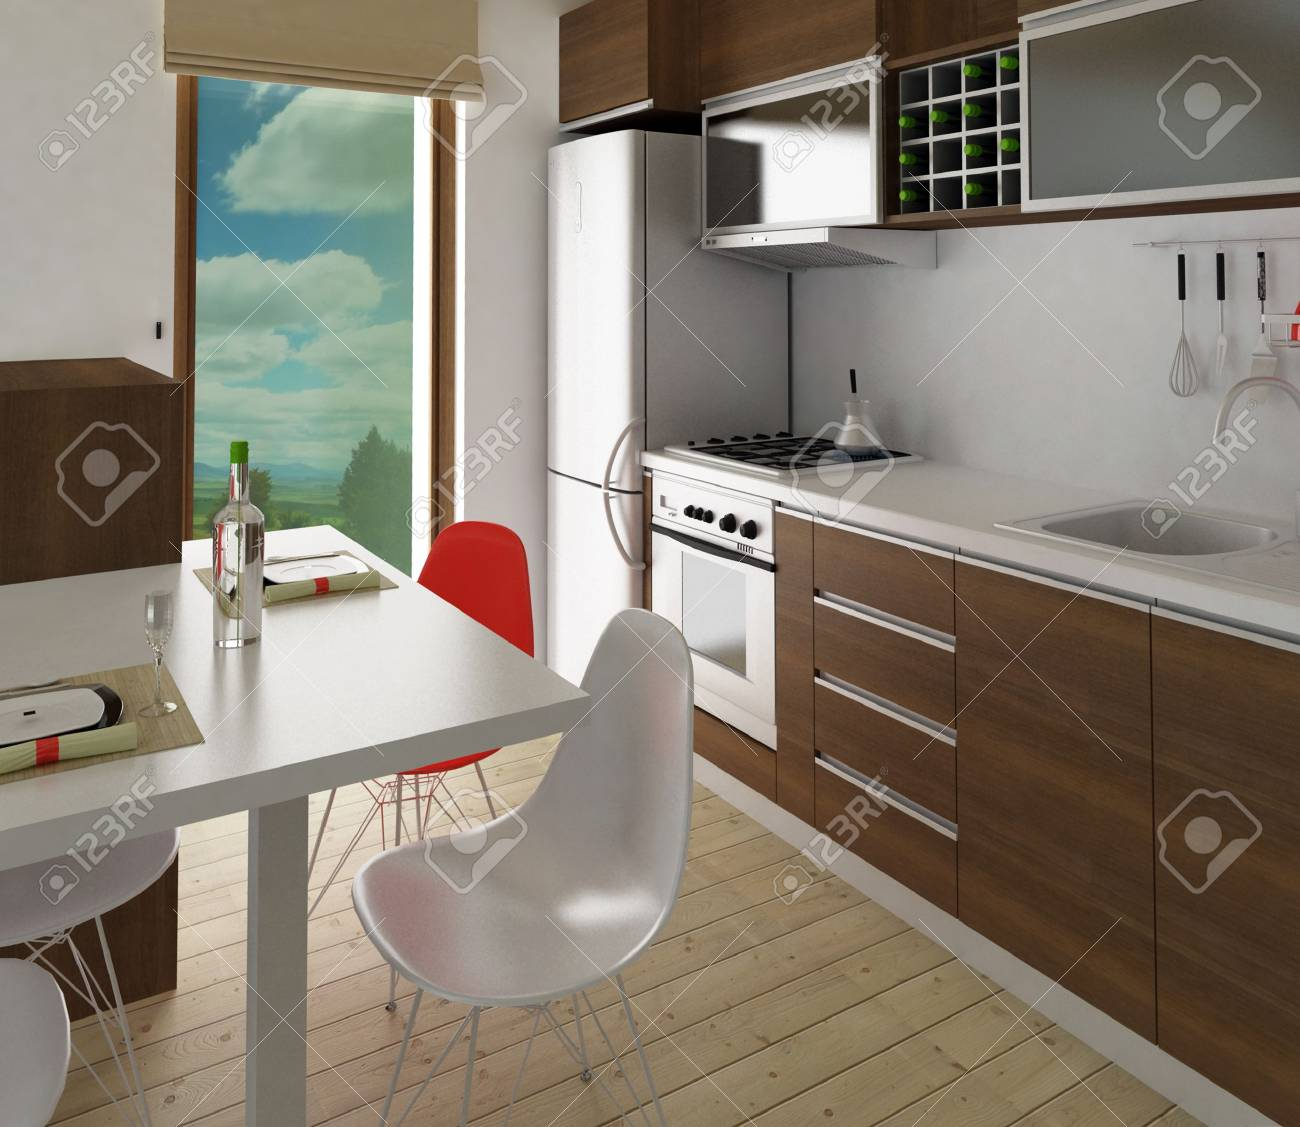 Modern kitchen with dining place - 8113457